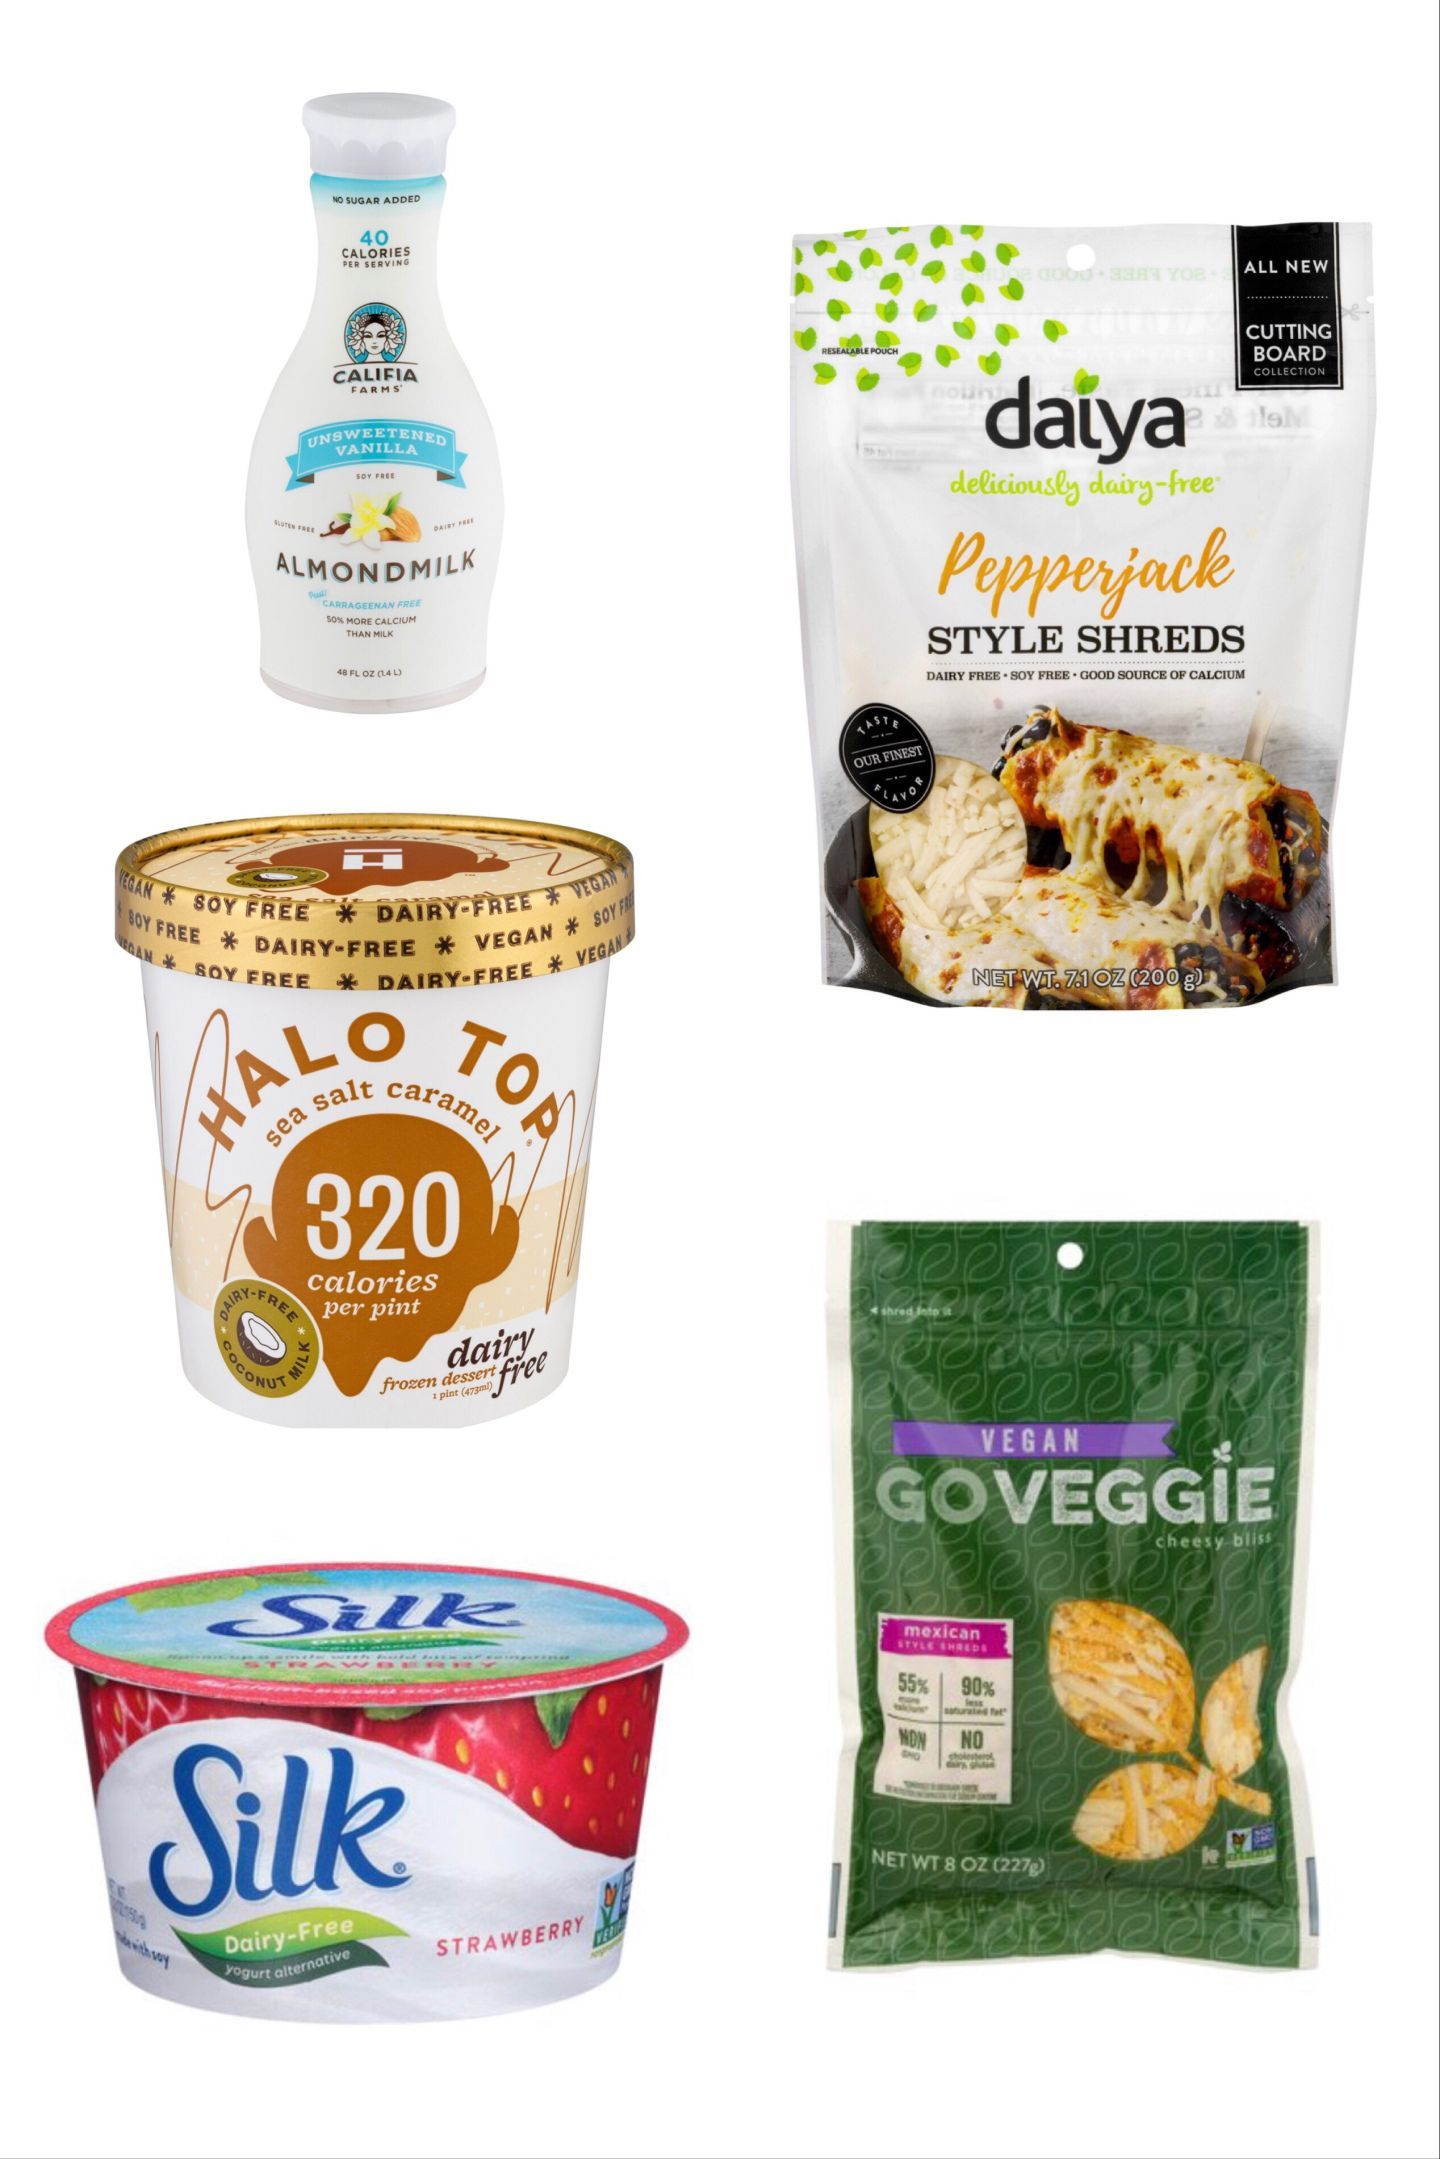 My Favorite Dairy Free Brands And Products In 2020 Dairy Free Yogurt Brands Dairy Free Gluten Free Ice Cream Dairy Free Creamer